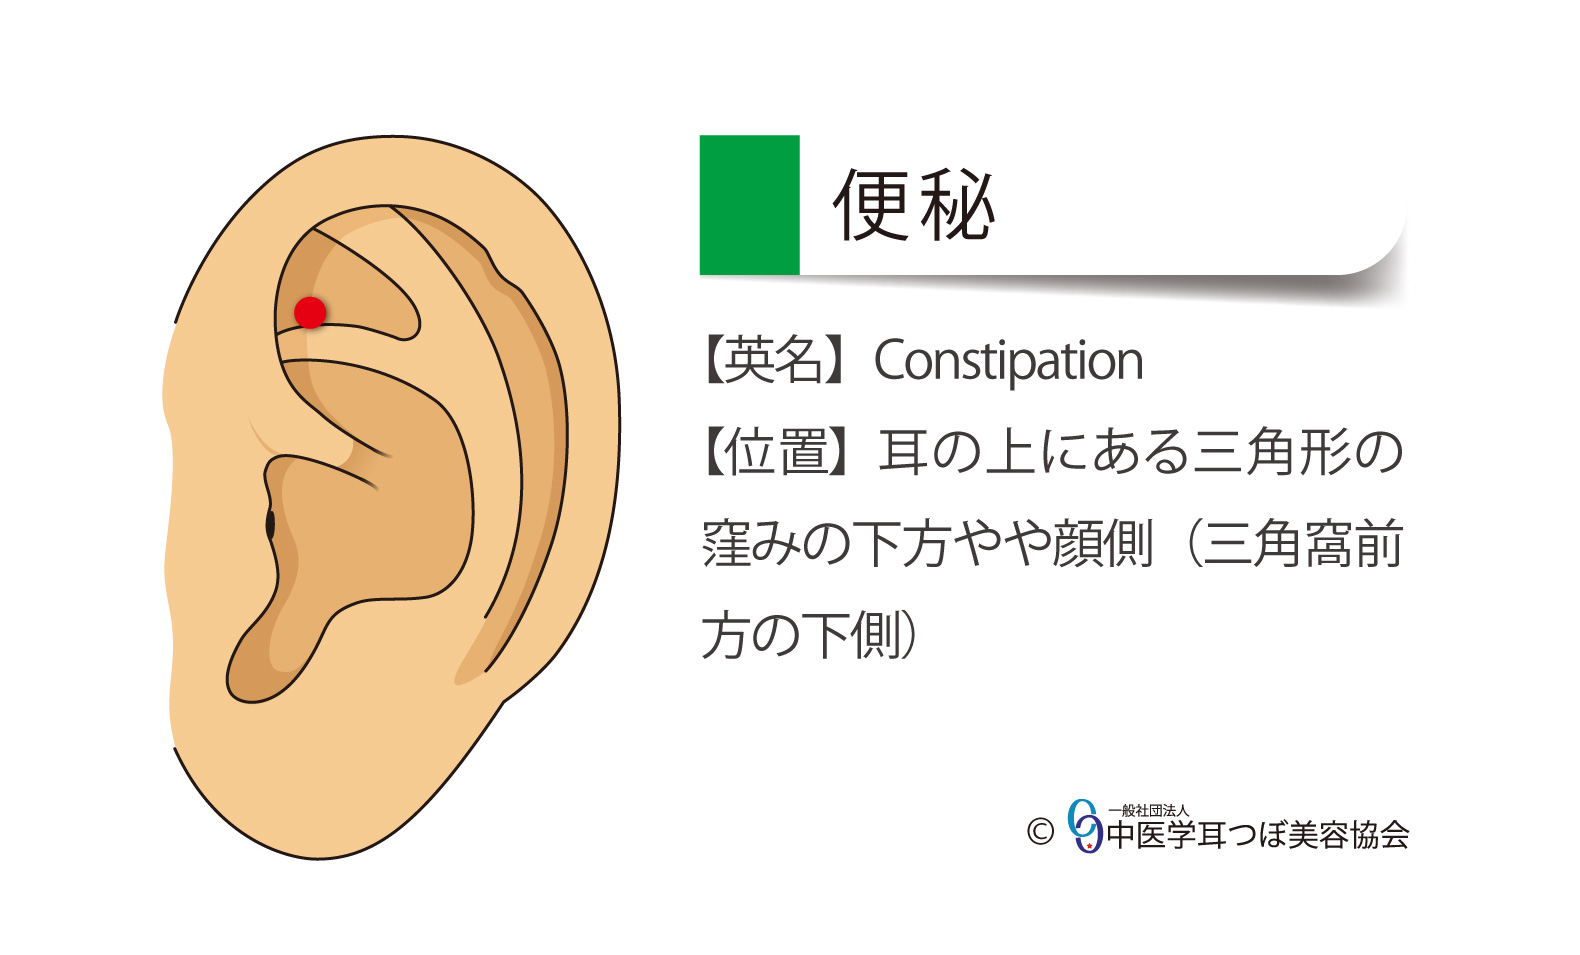 便秘、constipation